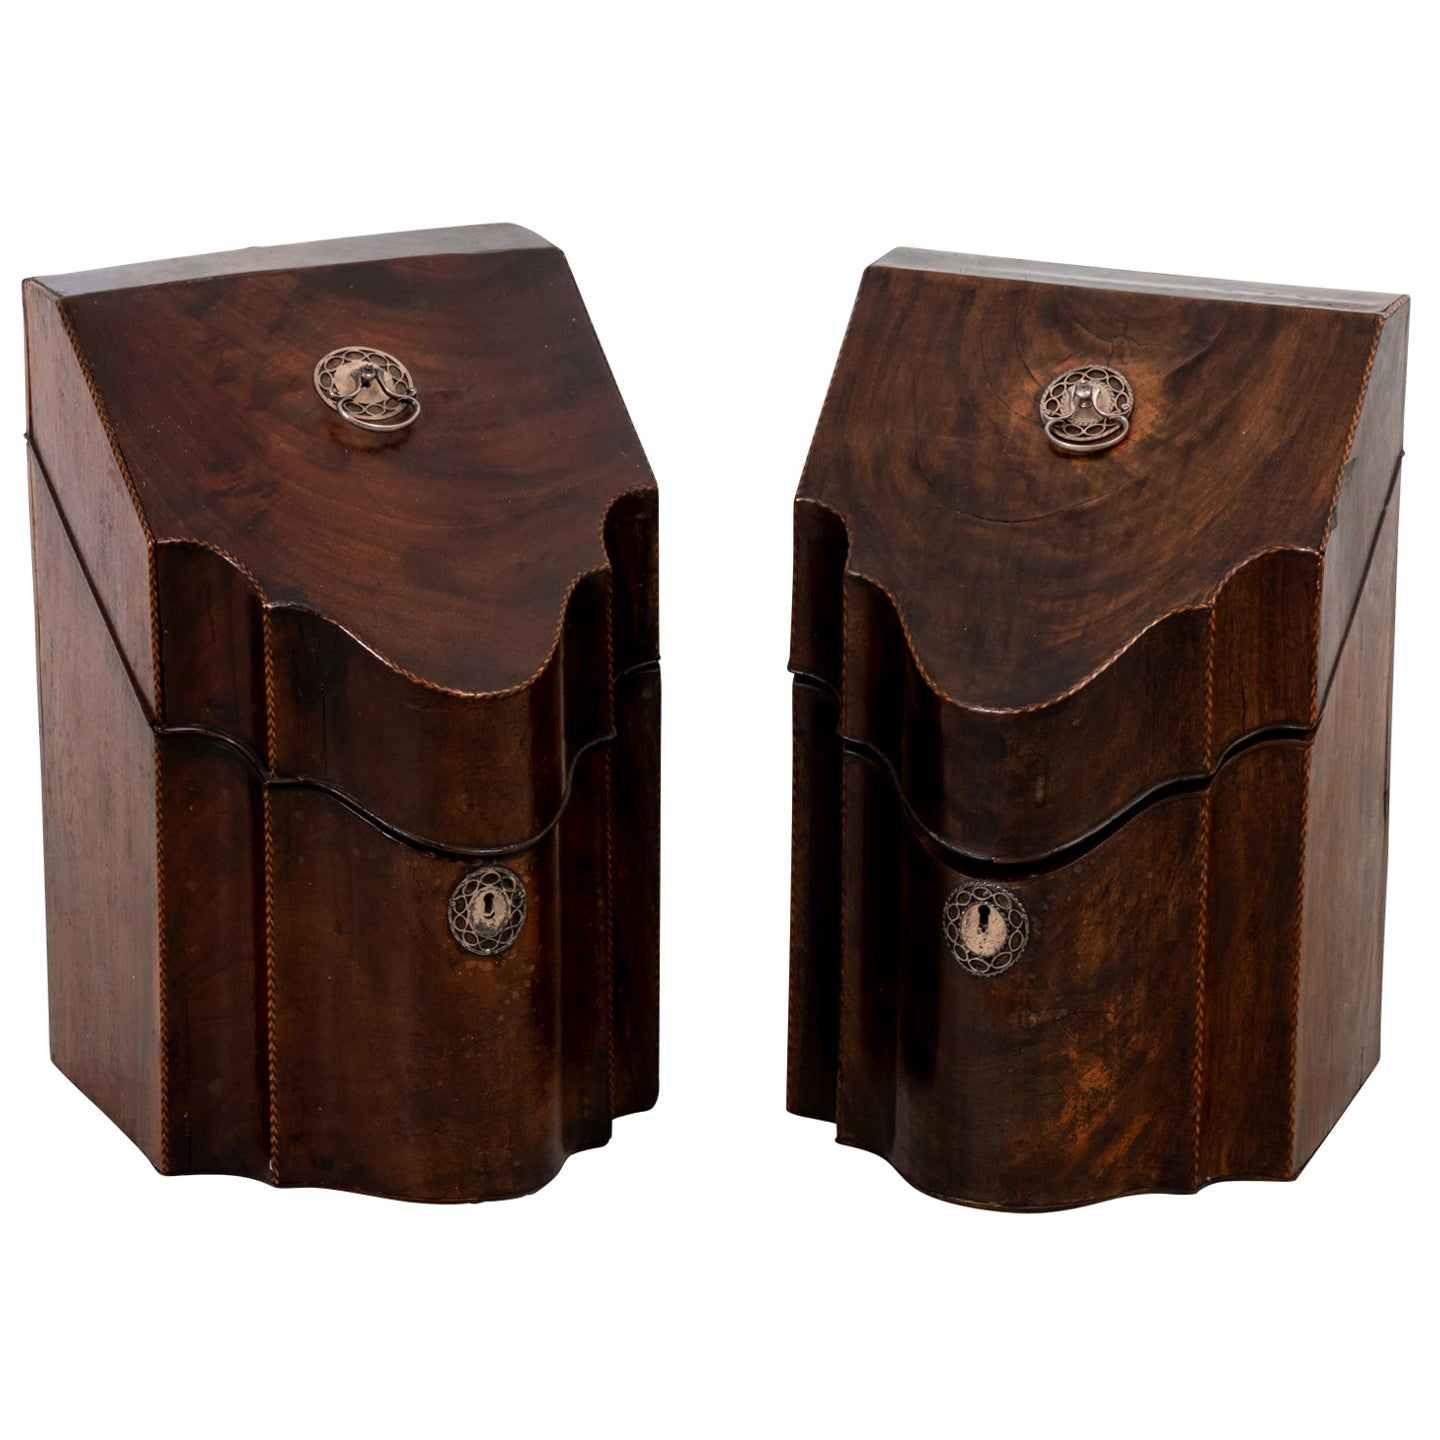 Pair of Slant Front Knife Boxes in the Manner of George Hepplewhite